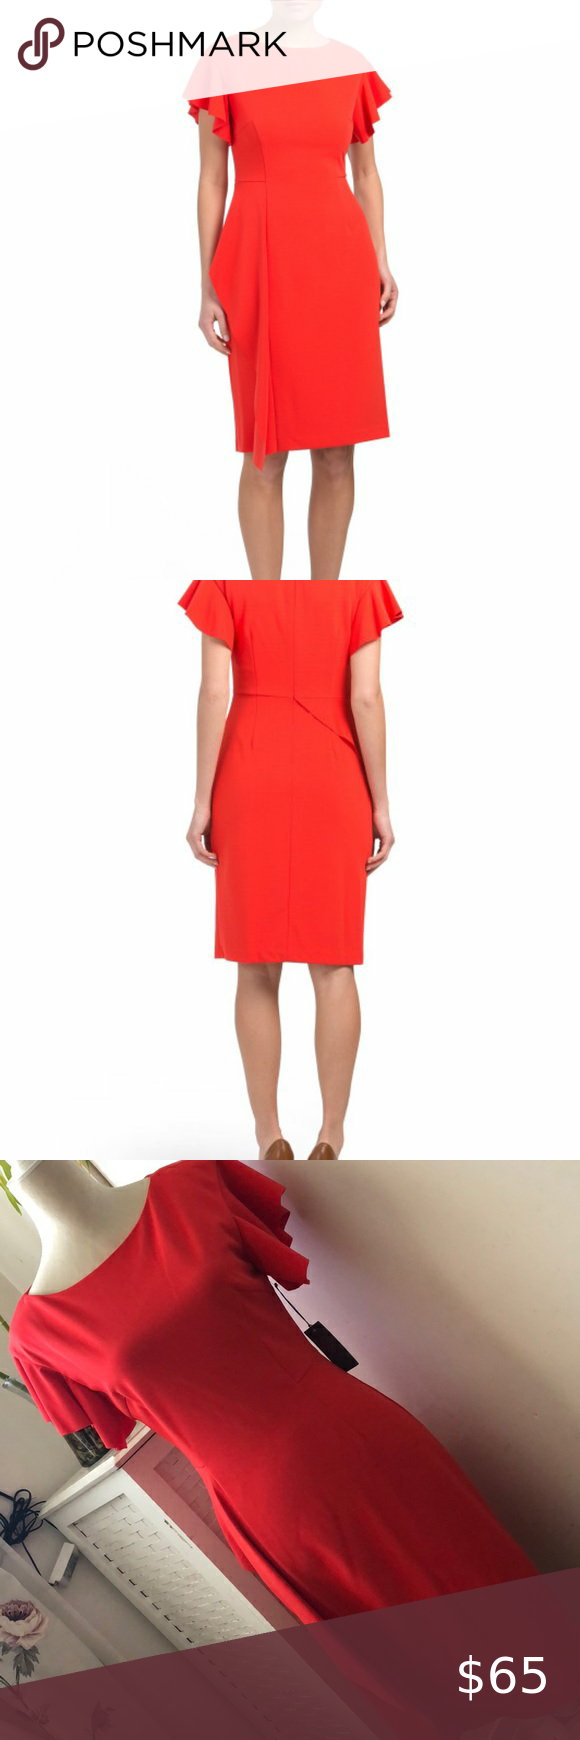 Vince Camuto Red Side Ruffle Dress Nwt Side Ruffle Detail Fabric Provides Stretch Flutter Sleeve Boat Neck Col Ruffle Dress Womens Dresses Vince Camuto Dress [ 1740 x 580 Pixel ]